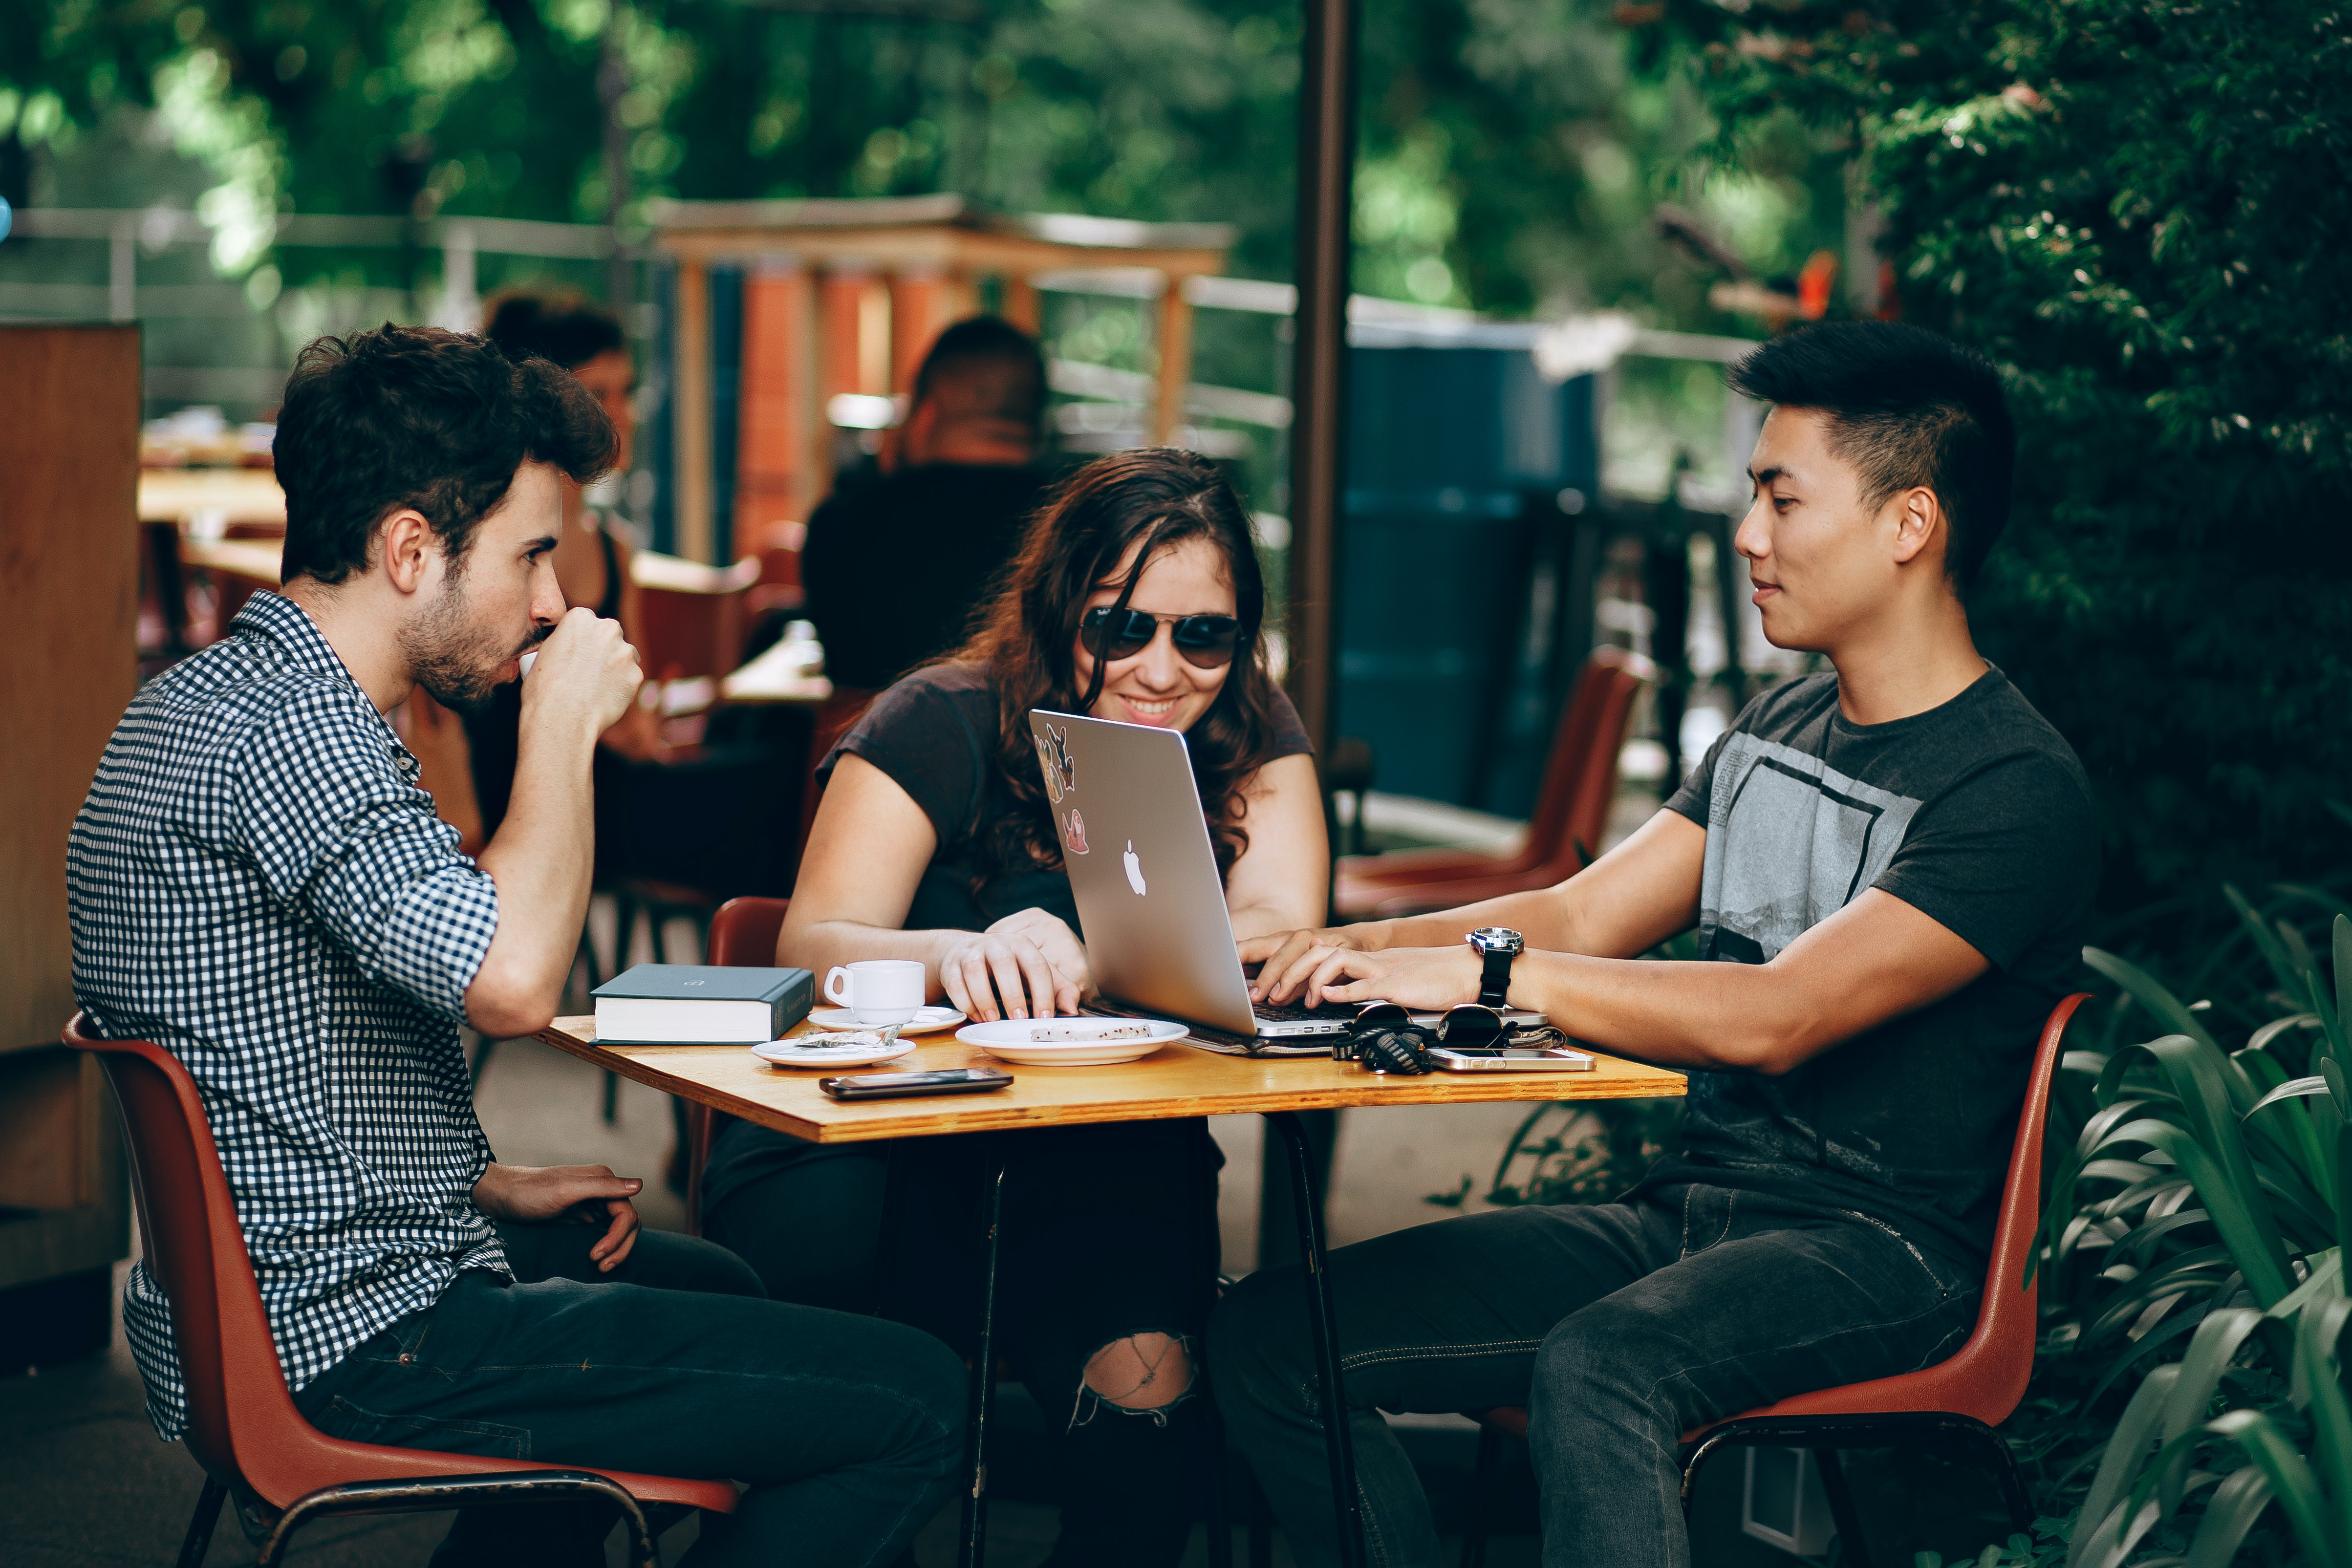 students at a table with laptops